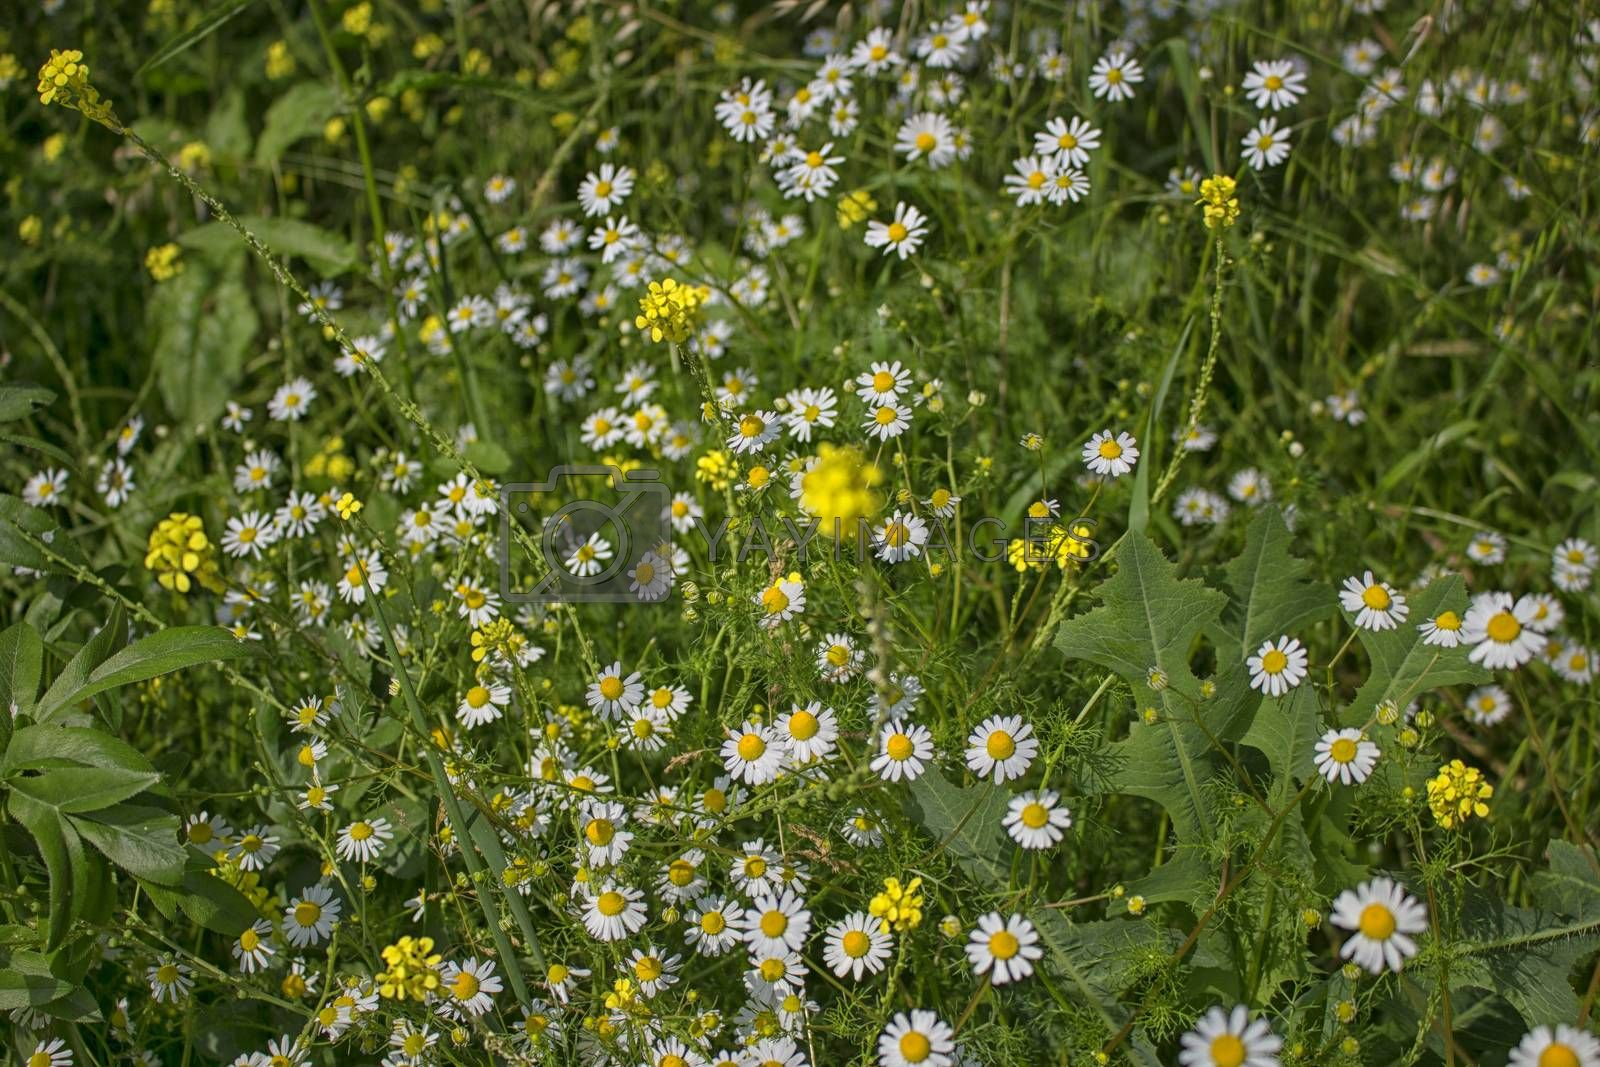 Daisies macro: bellis perennis group and yellow flowers on brown ground